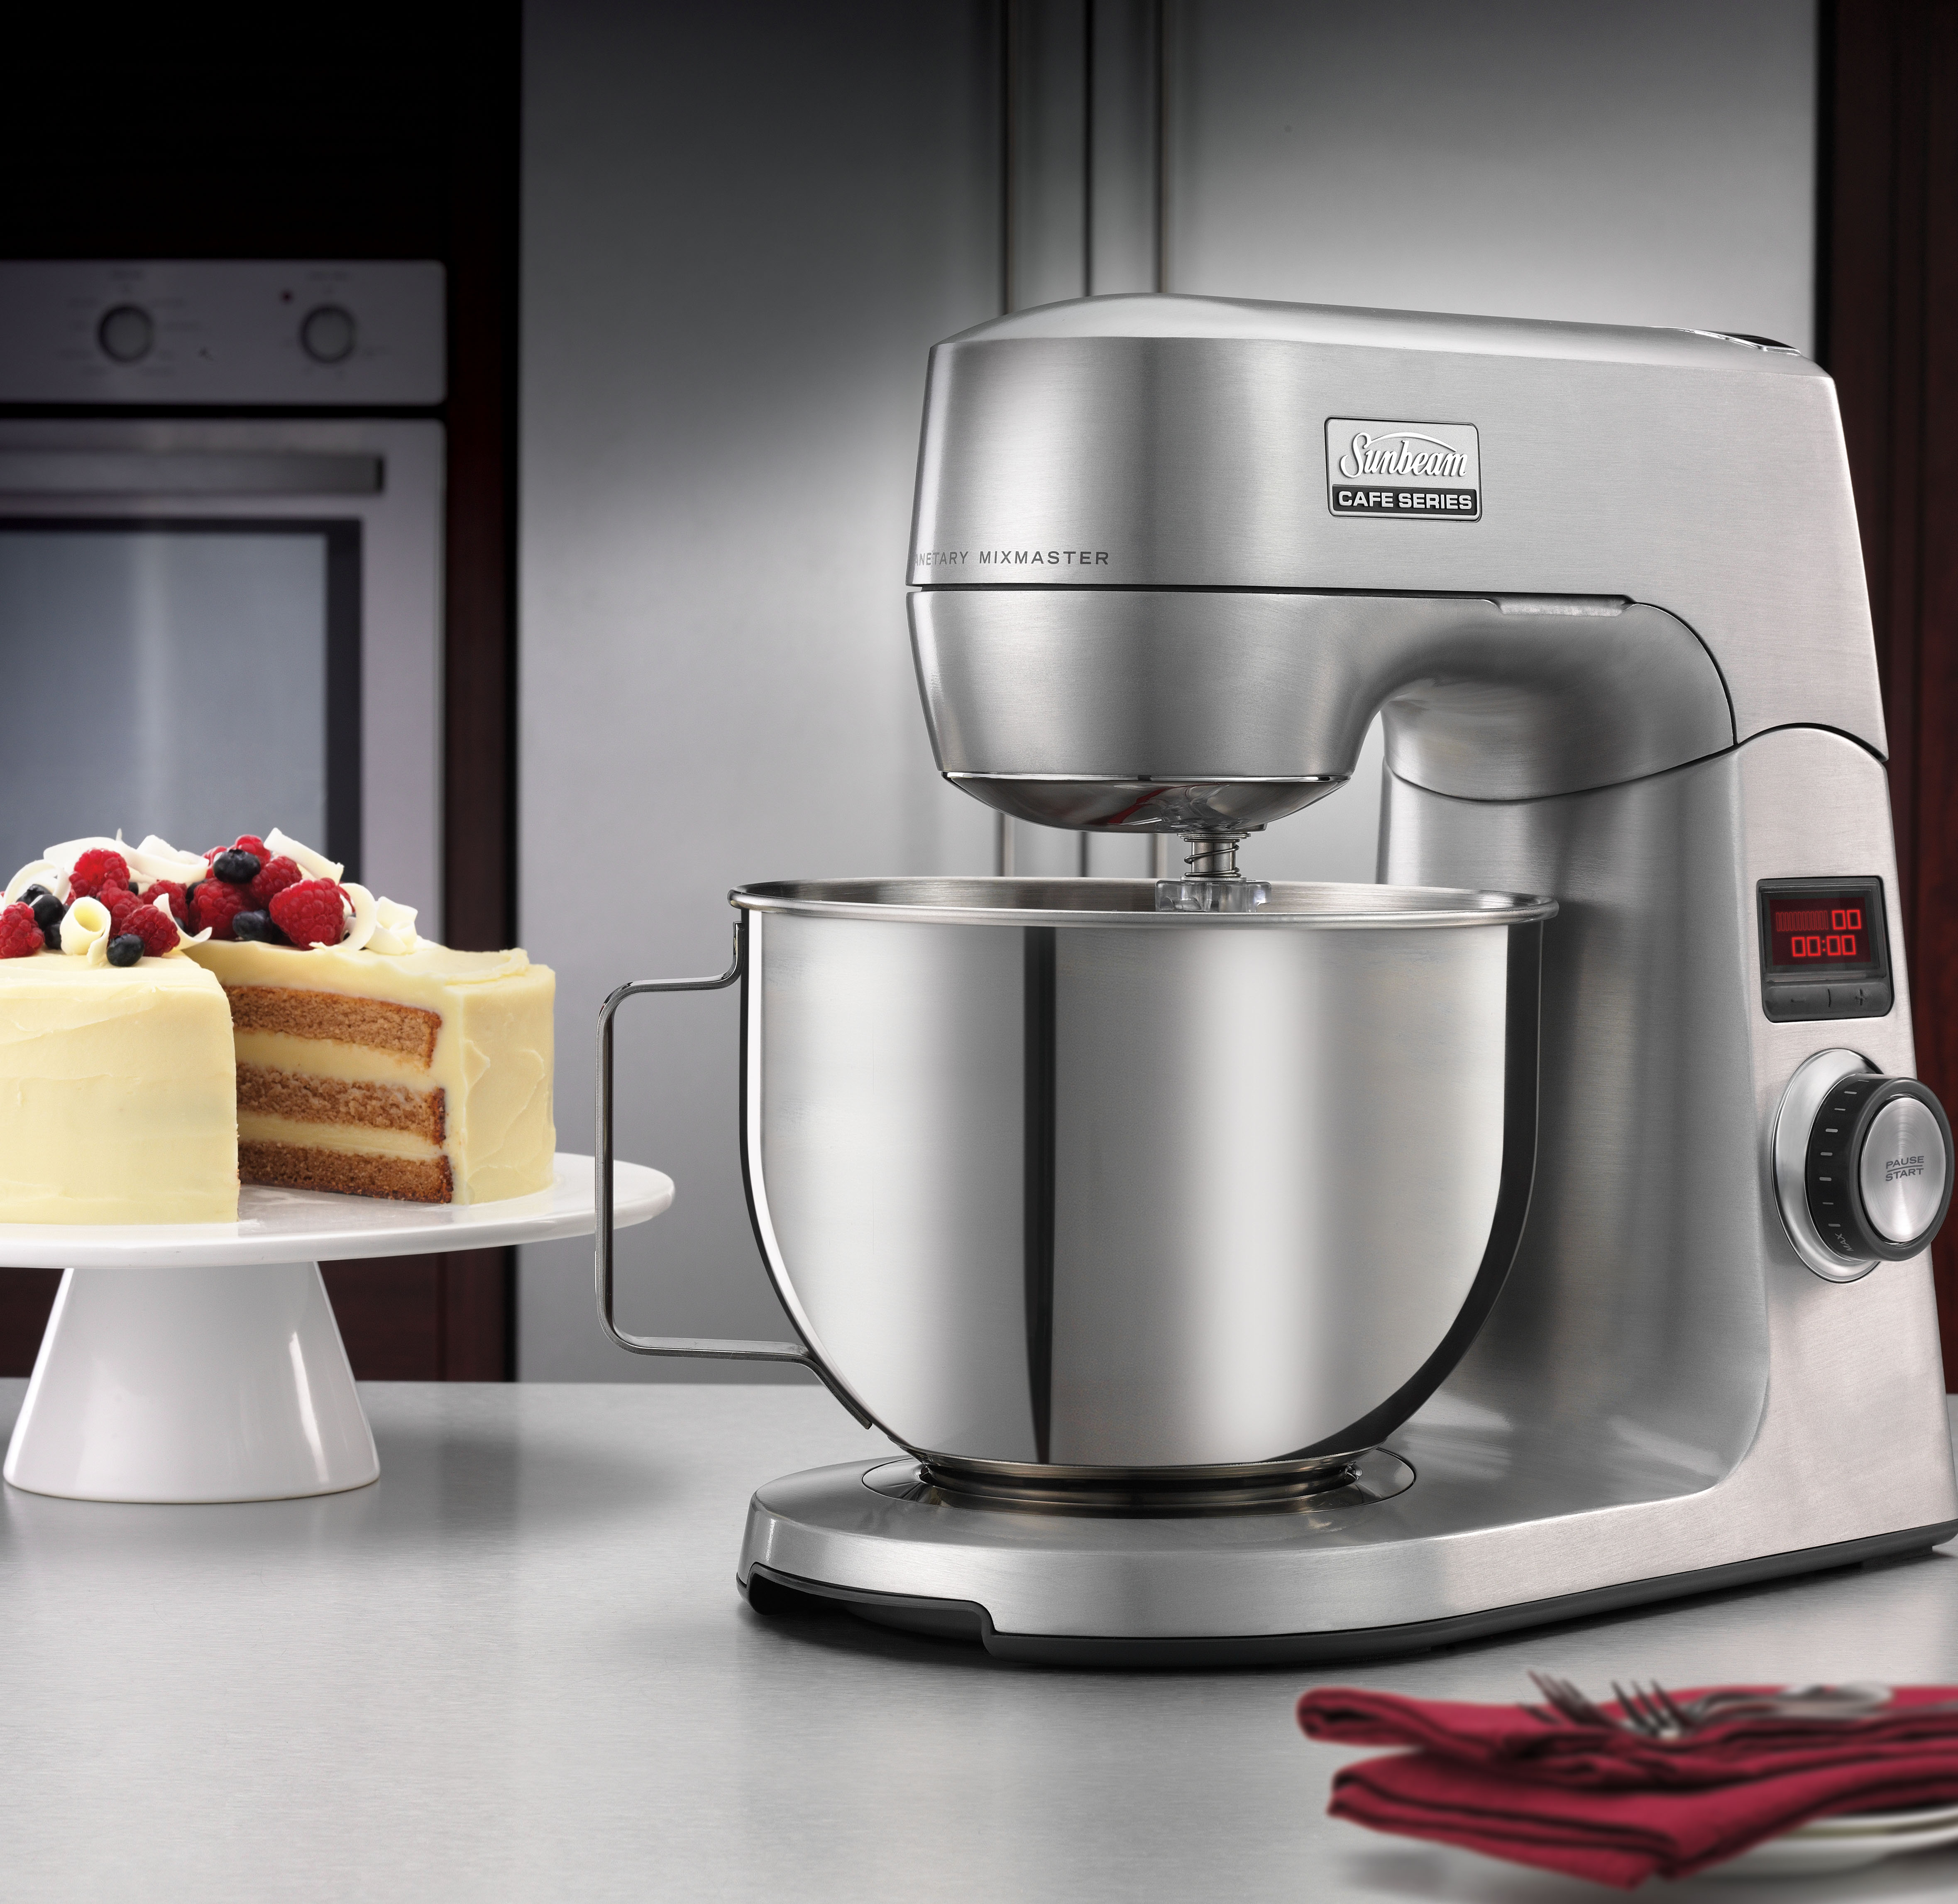 Sunbeam small appliances hit the mark « Appliances Online Blog